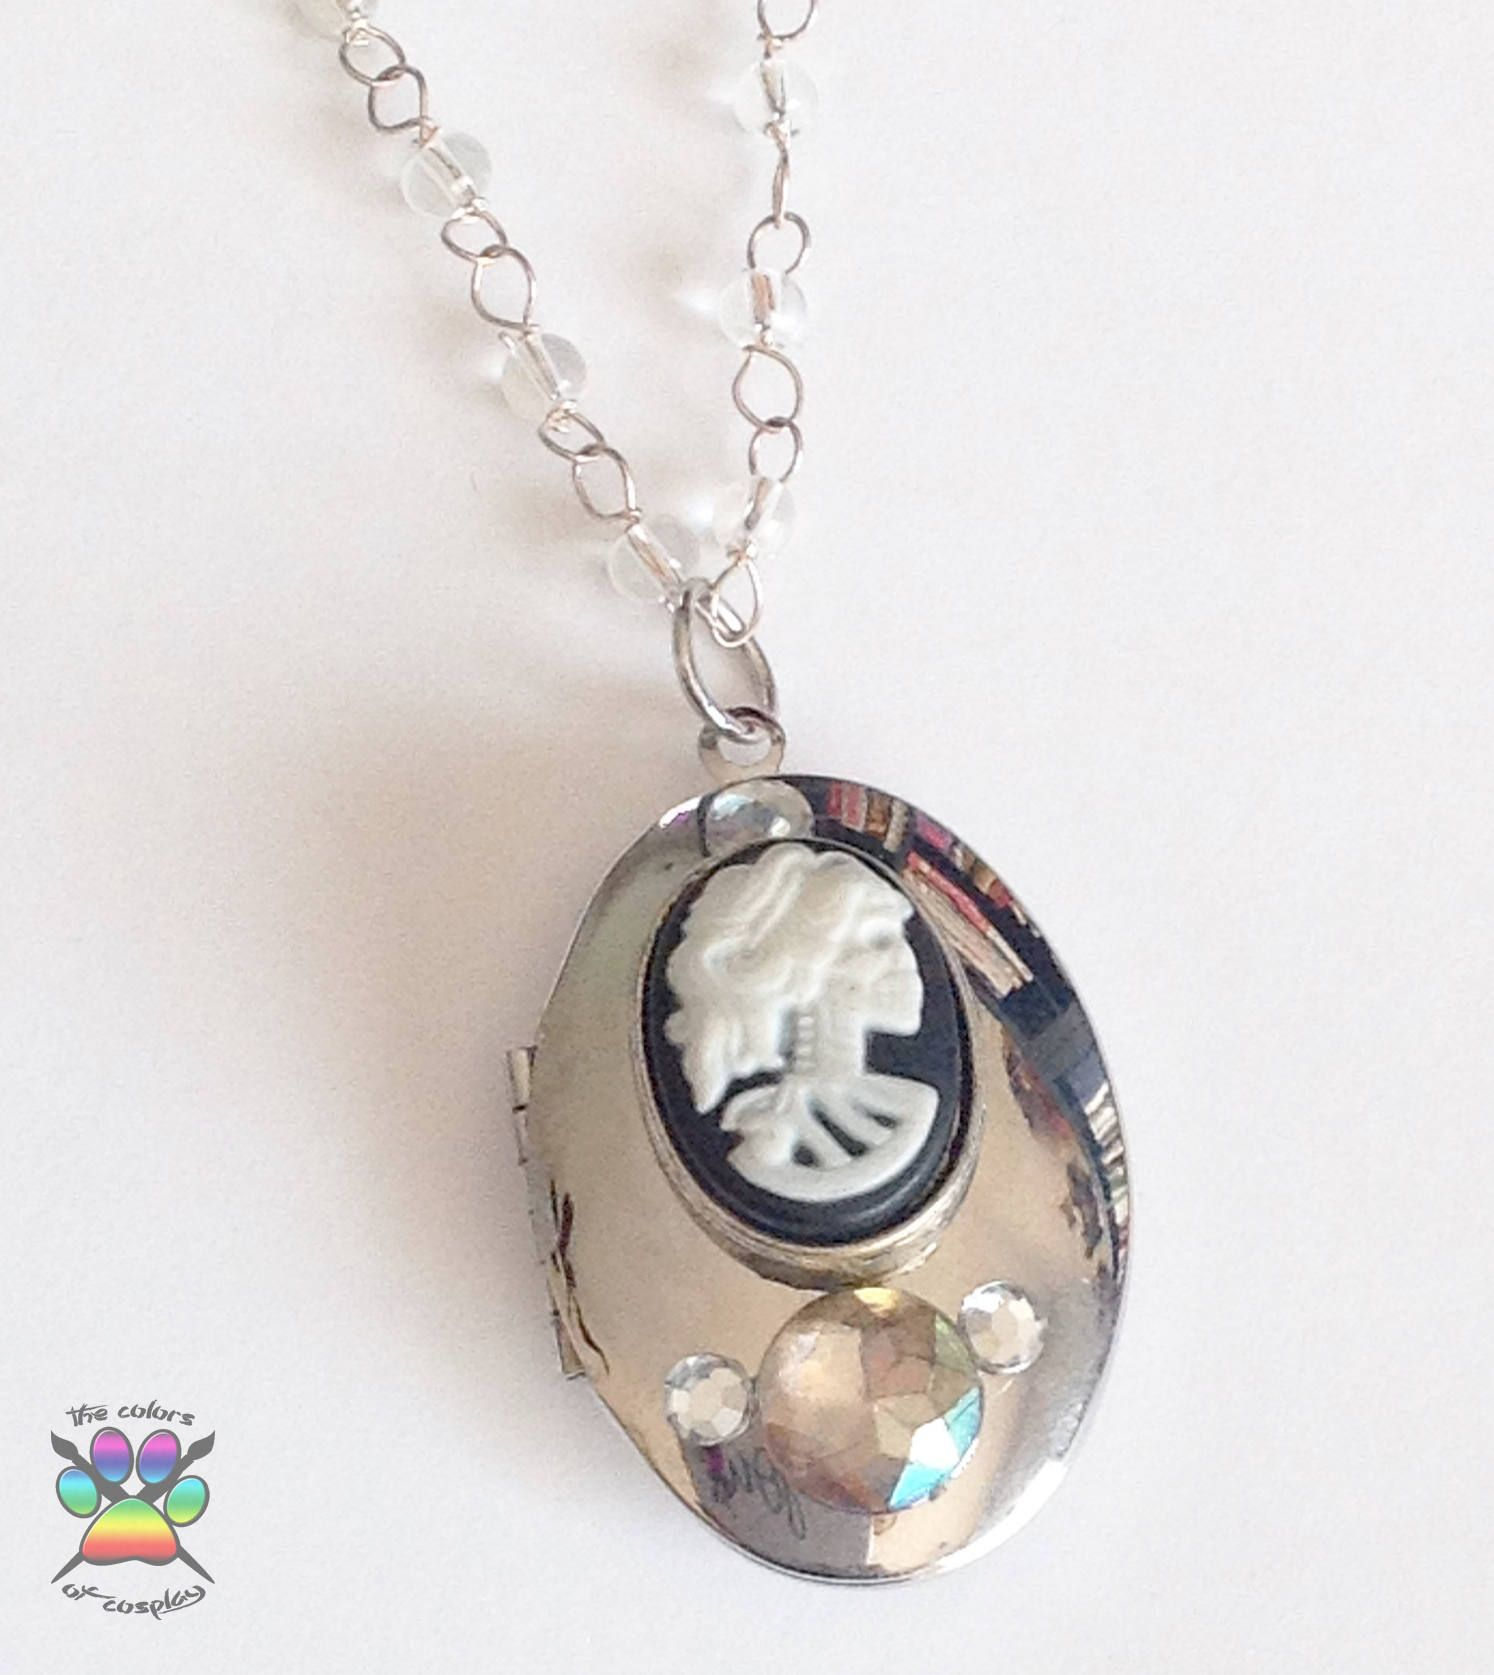 products aunt set me tell it gift boy tc necklace charm mom jewelry a locket gifts hugs s floating baby lockets unique aunts for b